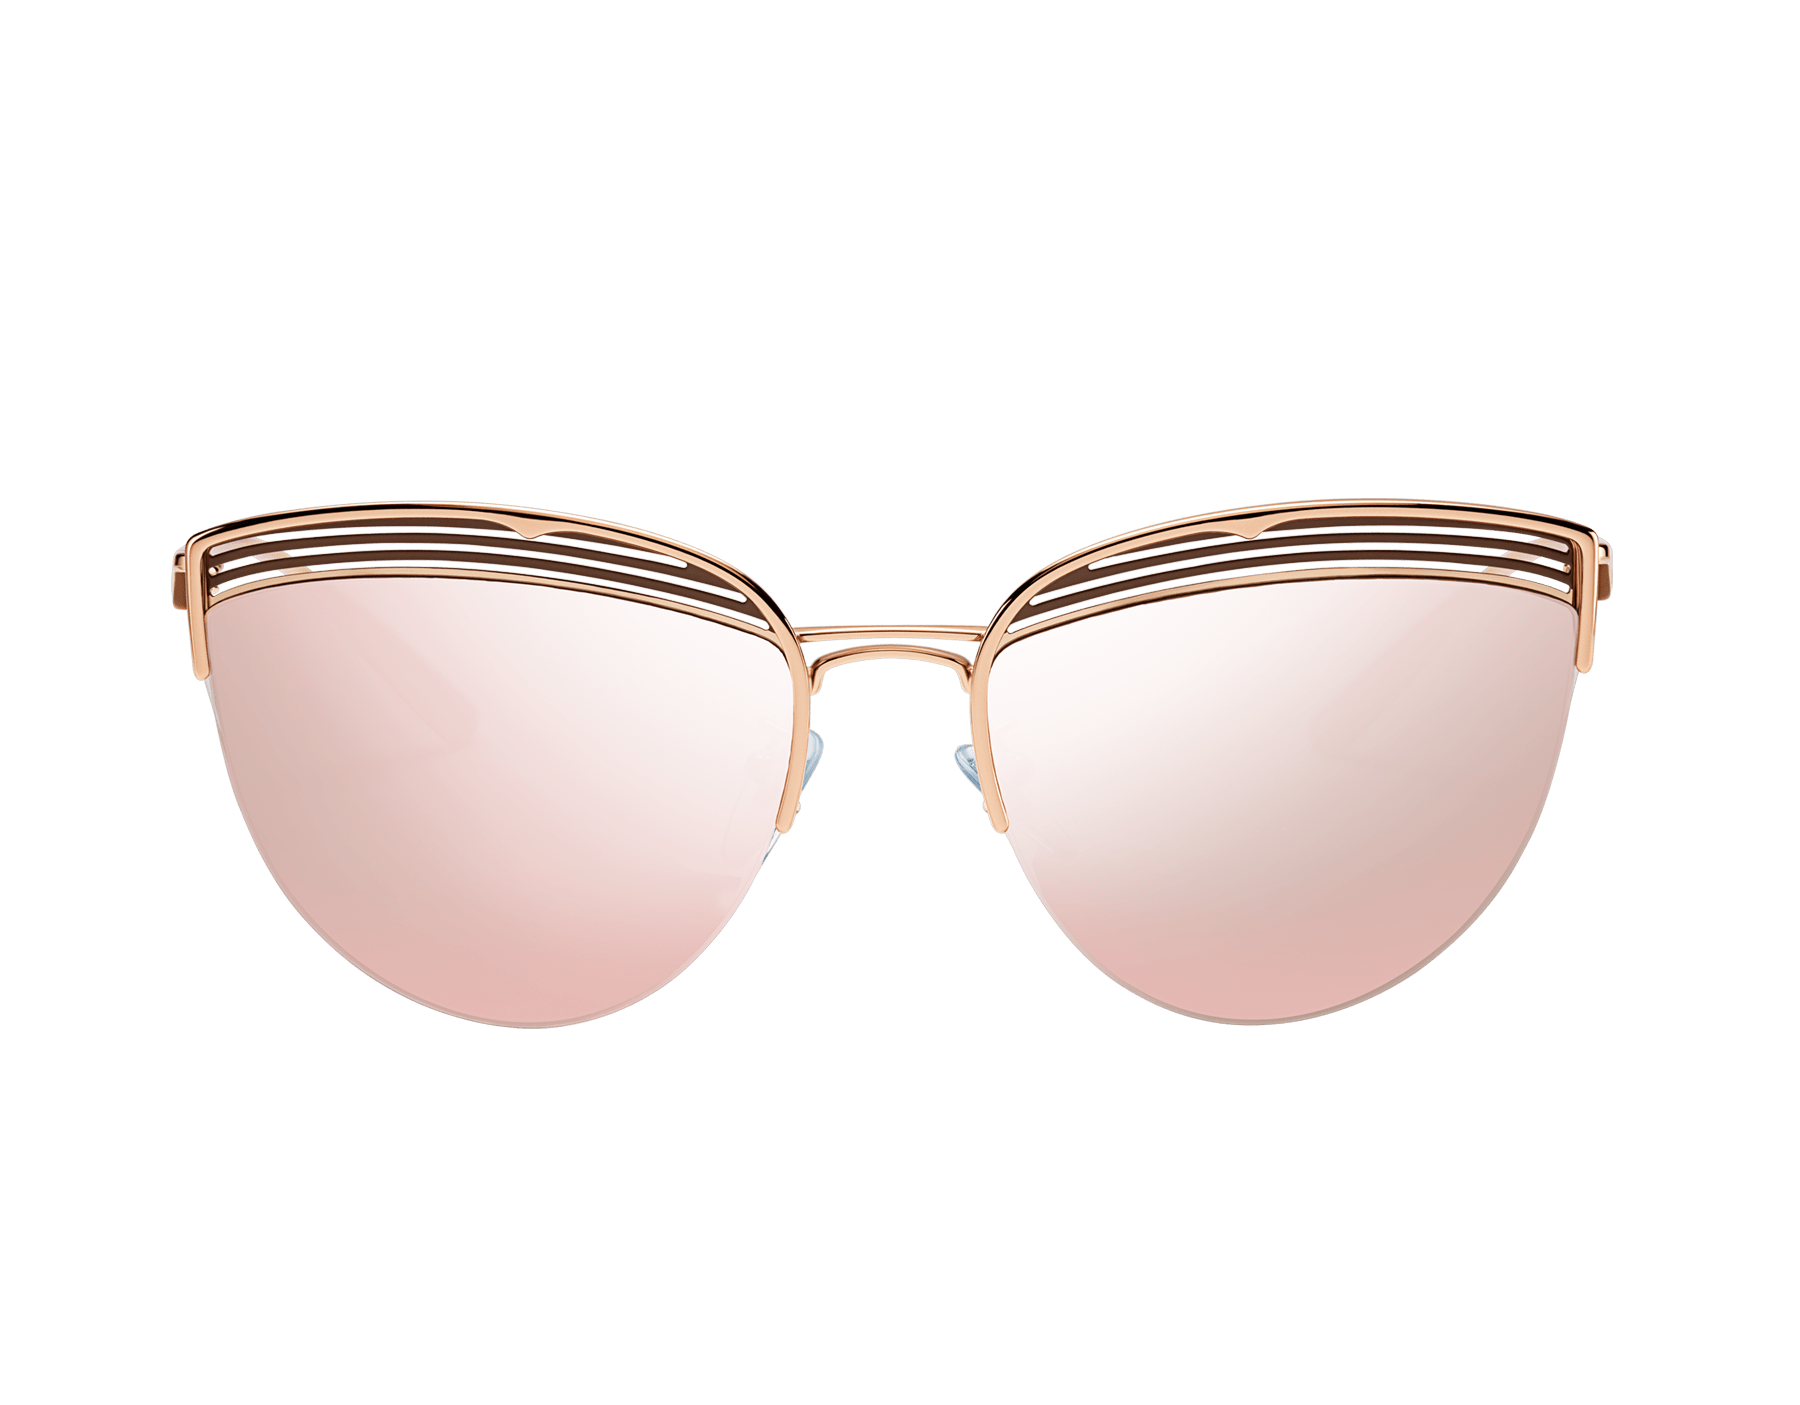 Bvlgari B.zero1 B.purevibes semi-rimless cat-eye metal sunglasses. 903717 image 2